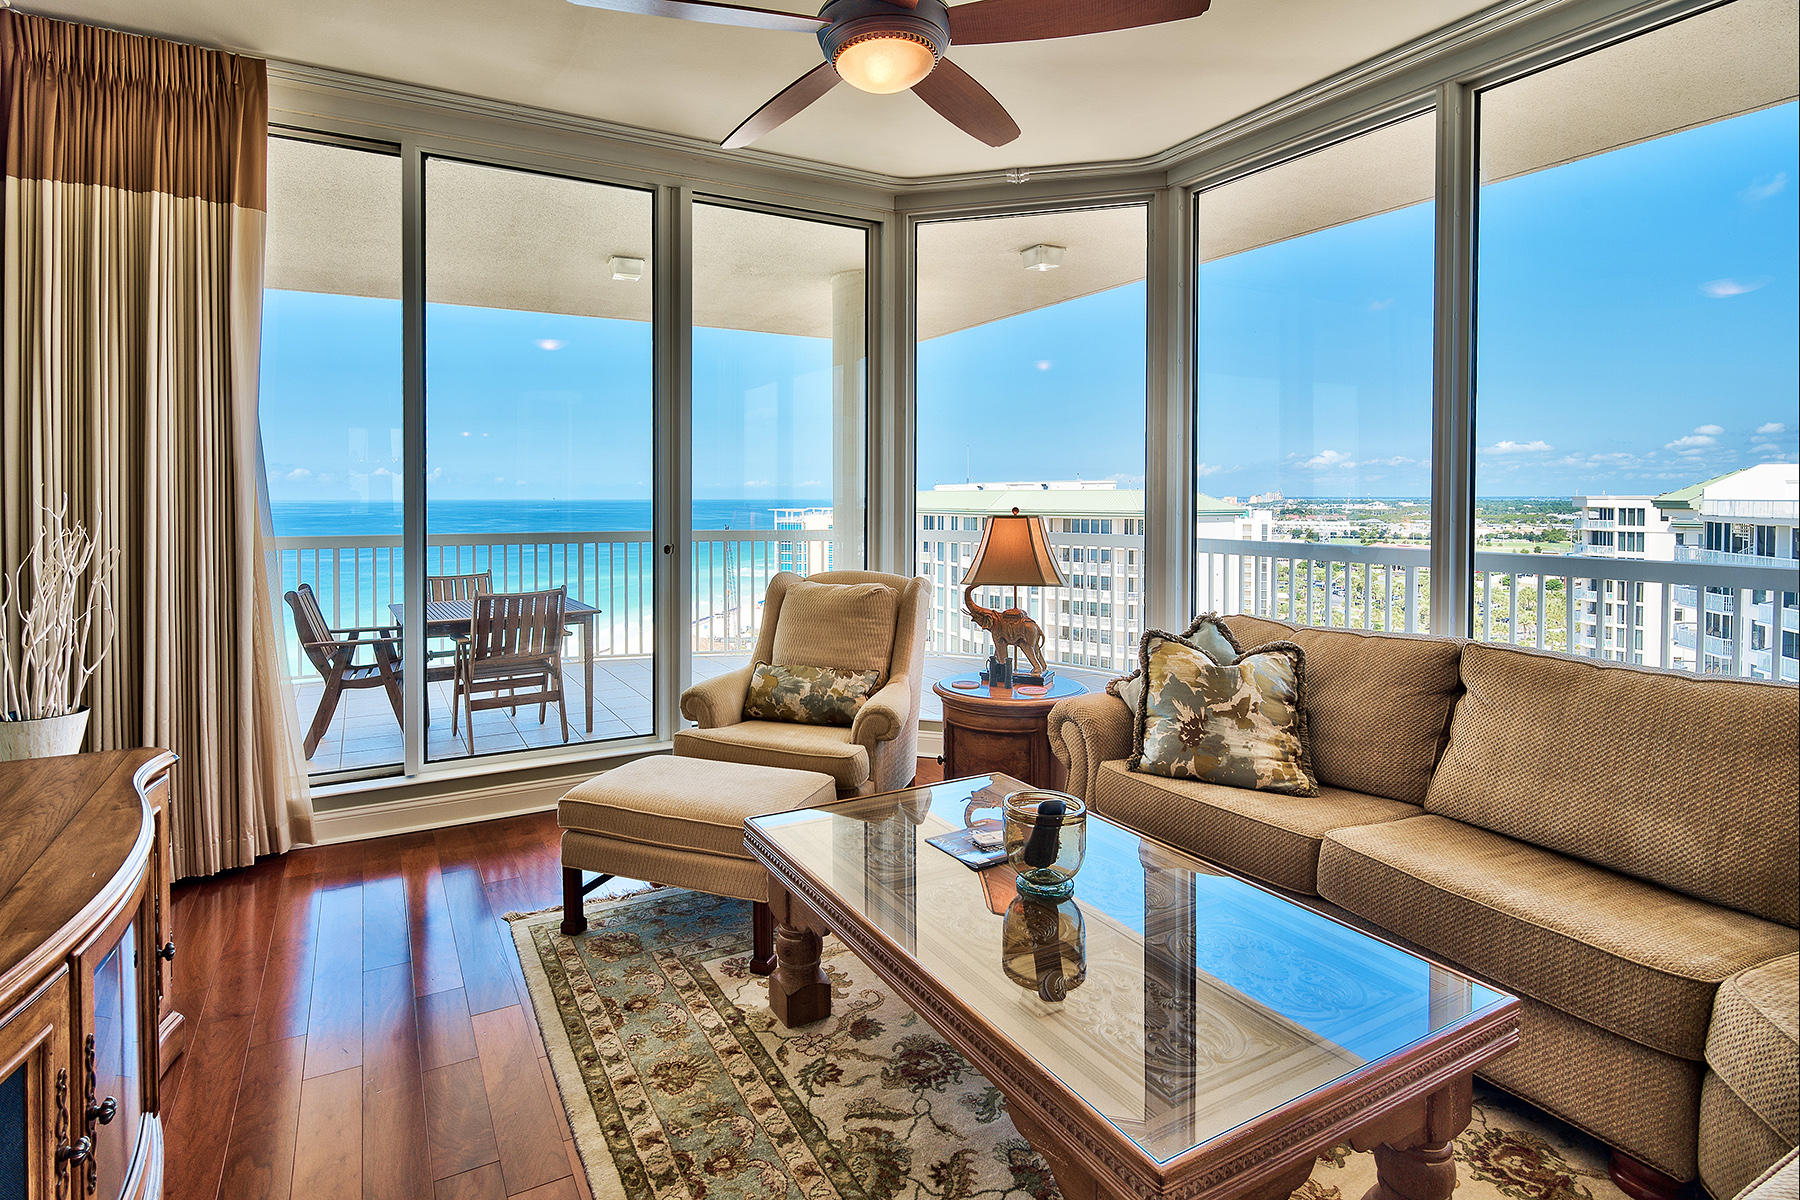 Appartement en copropriété pour l Vente à Corner Penthouse With Unsurpassed Gulf Views 15400 Emerald Coast Parkway PH8A Destin, Florida, 32541 États-Unis